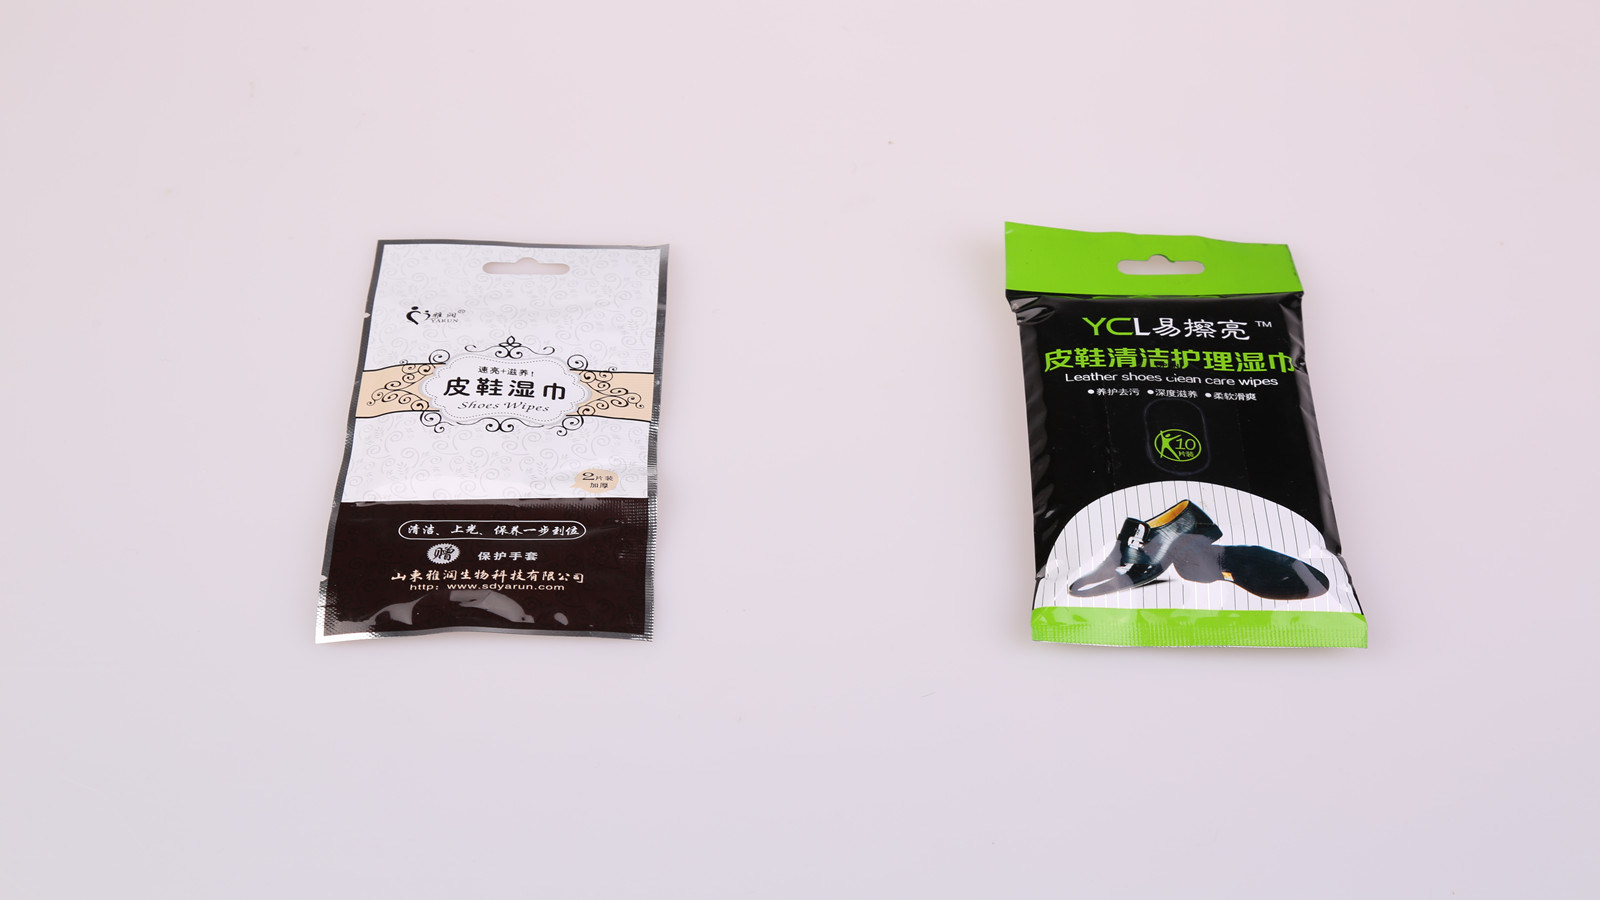 Shoes Skin Care and Cleaning Wipes